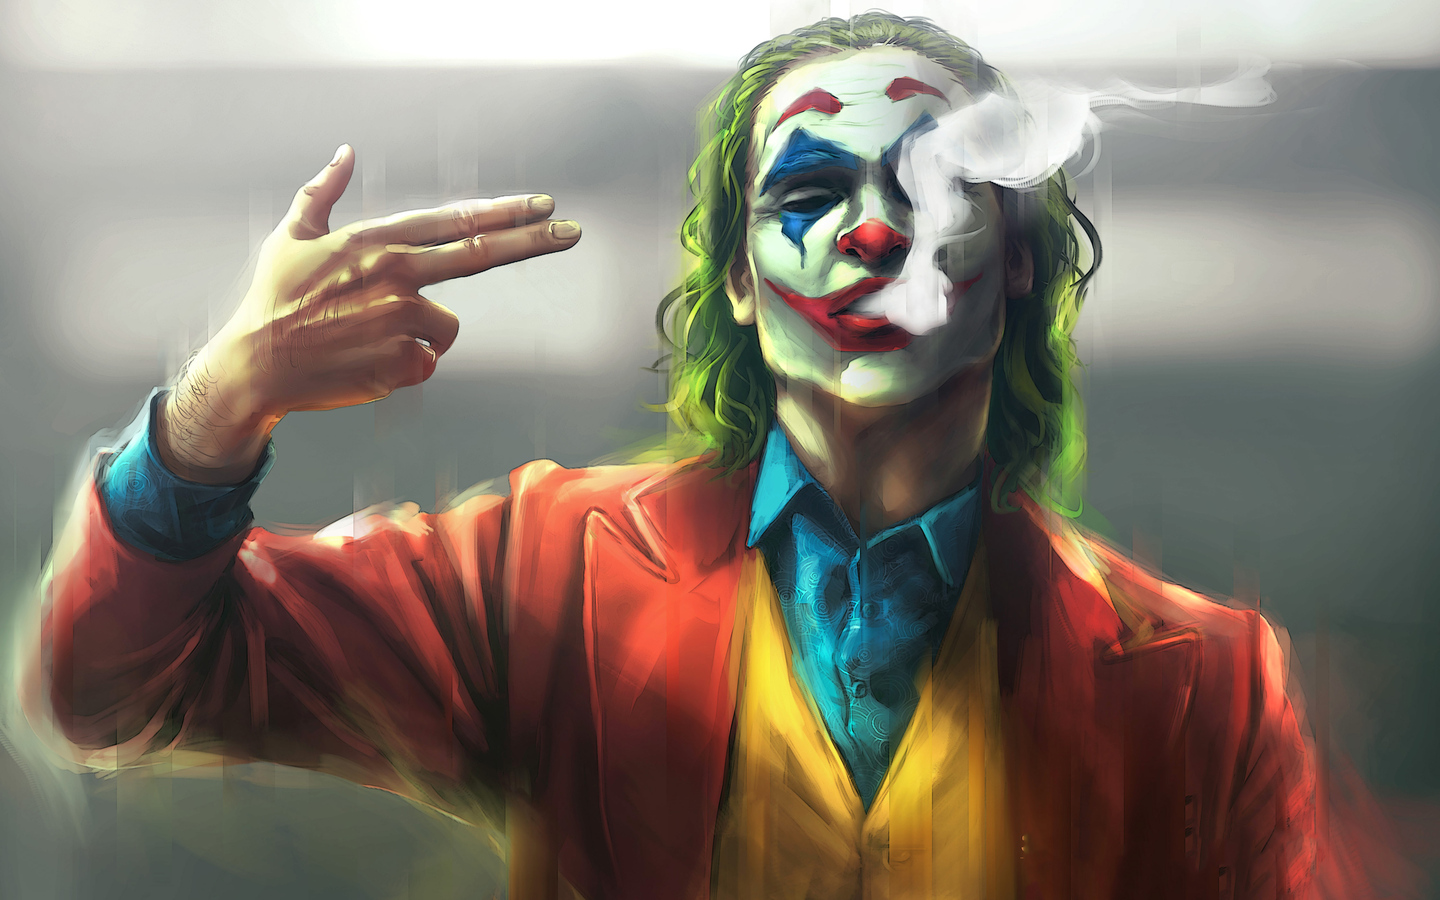 joker-finger-gun-shot-o4.jpg